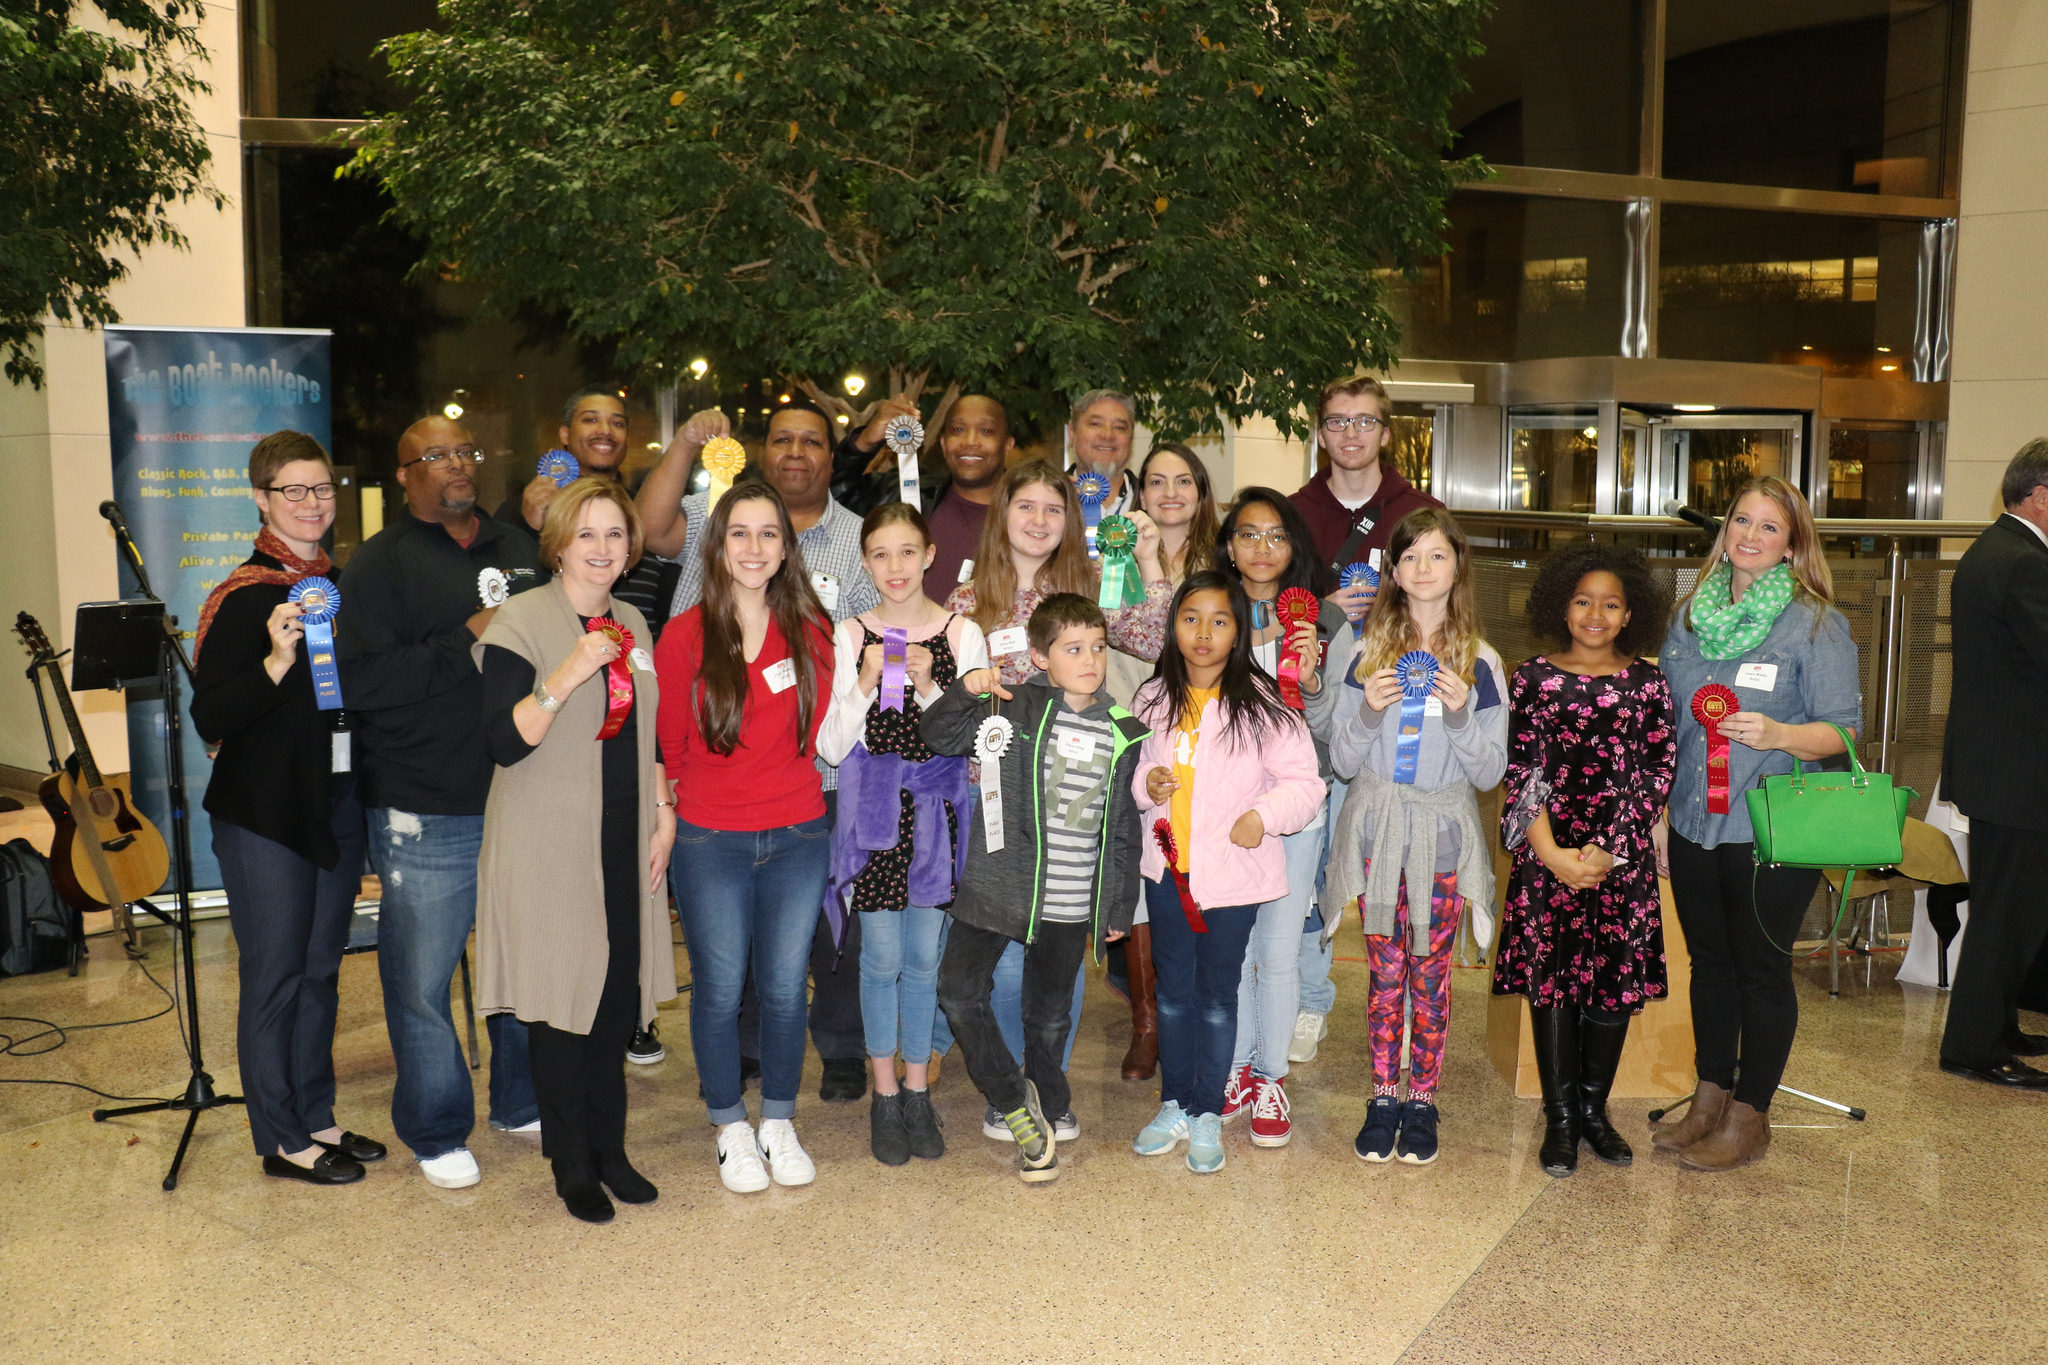 Award winners from the 18th Annual National Arts Program